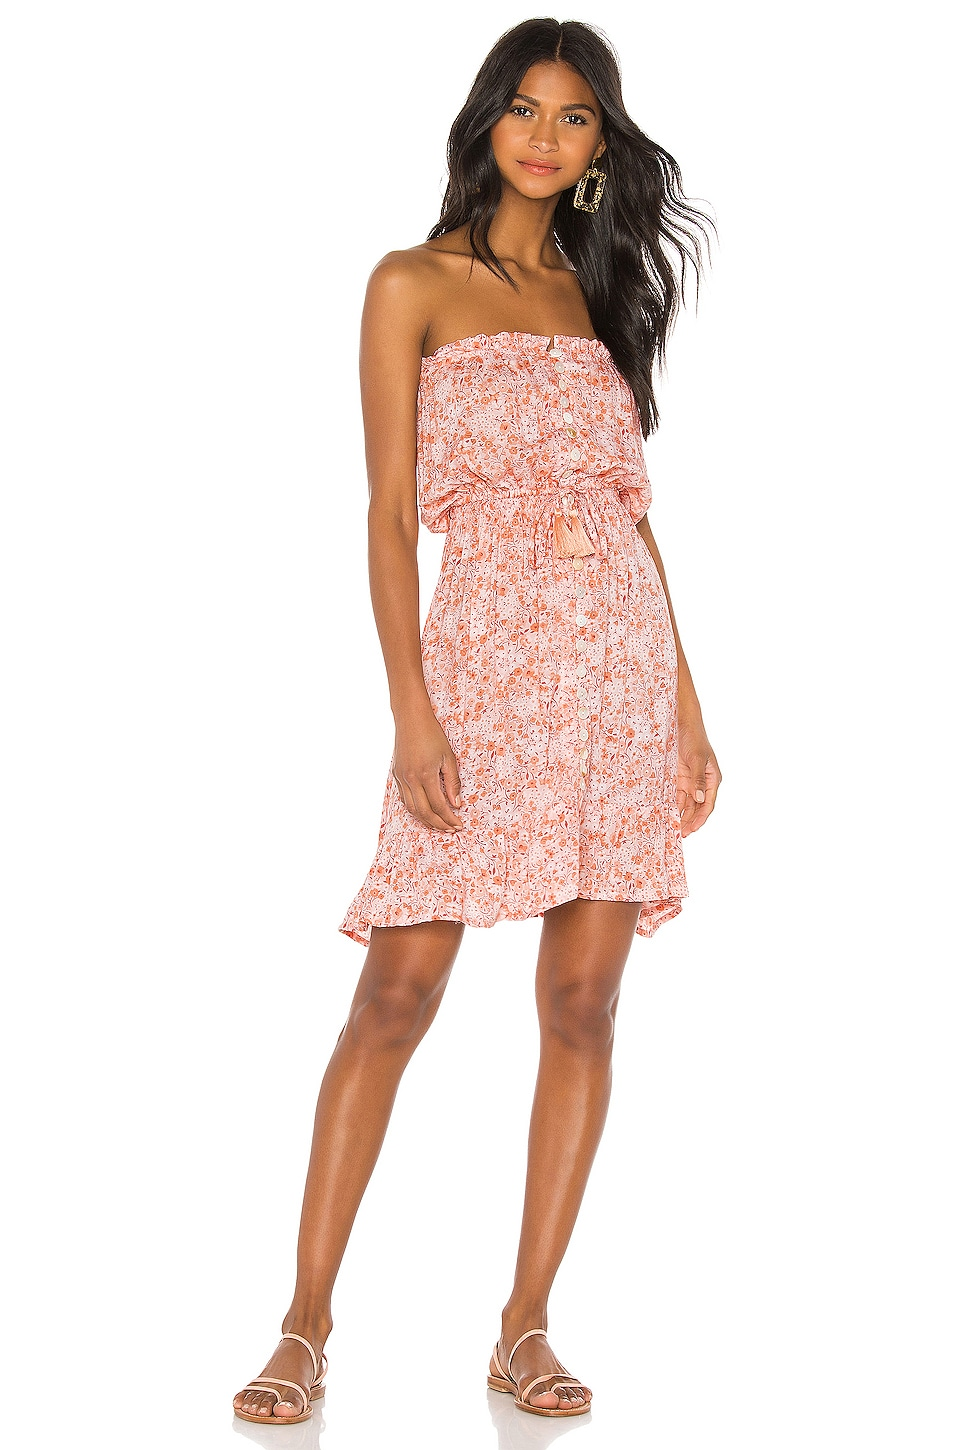 Tiare Hawaii Ryden Mini Dress in Love Spell Rose